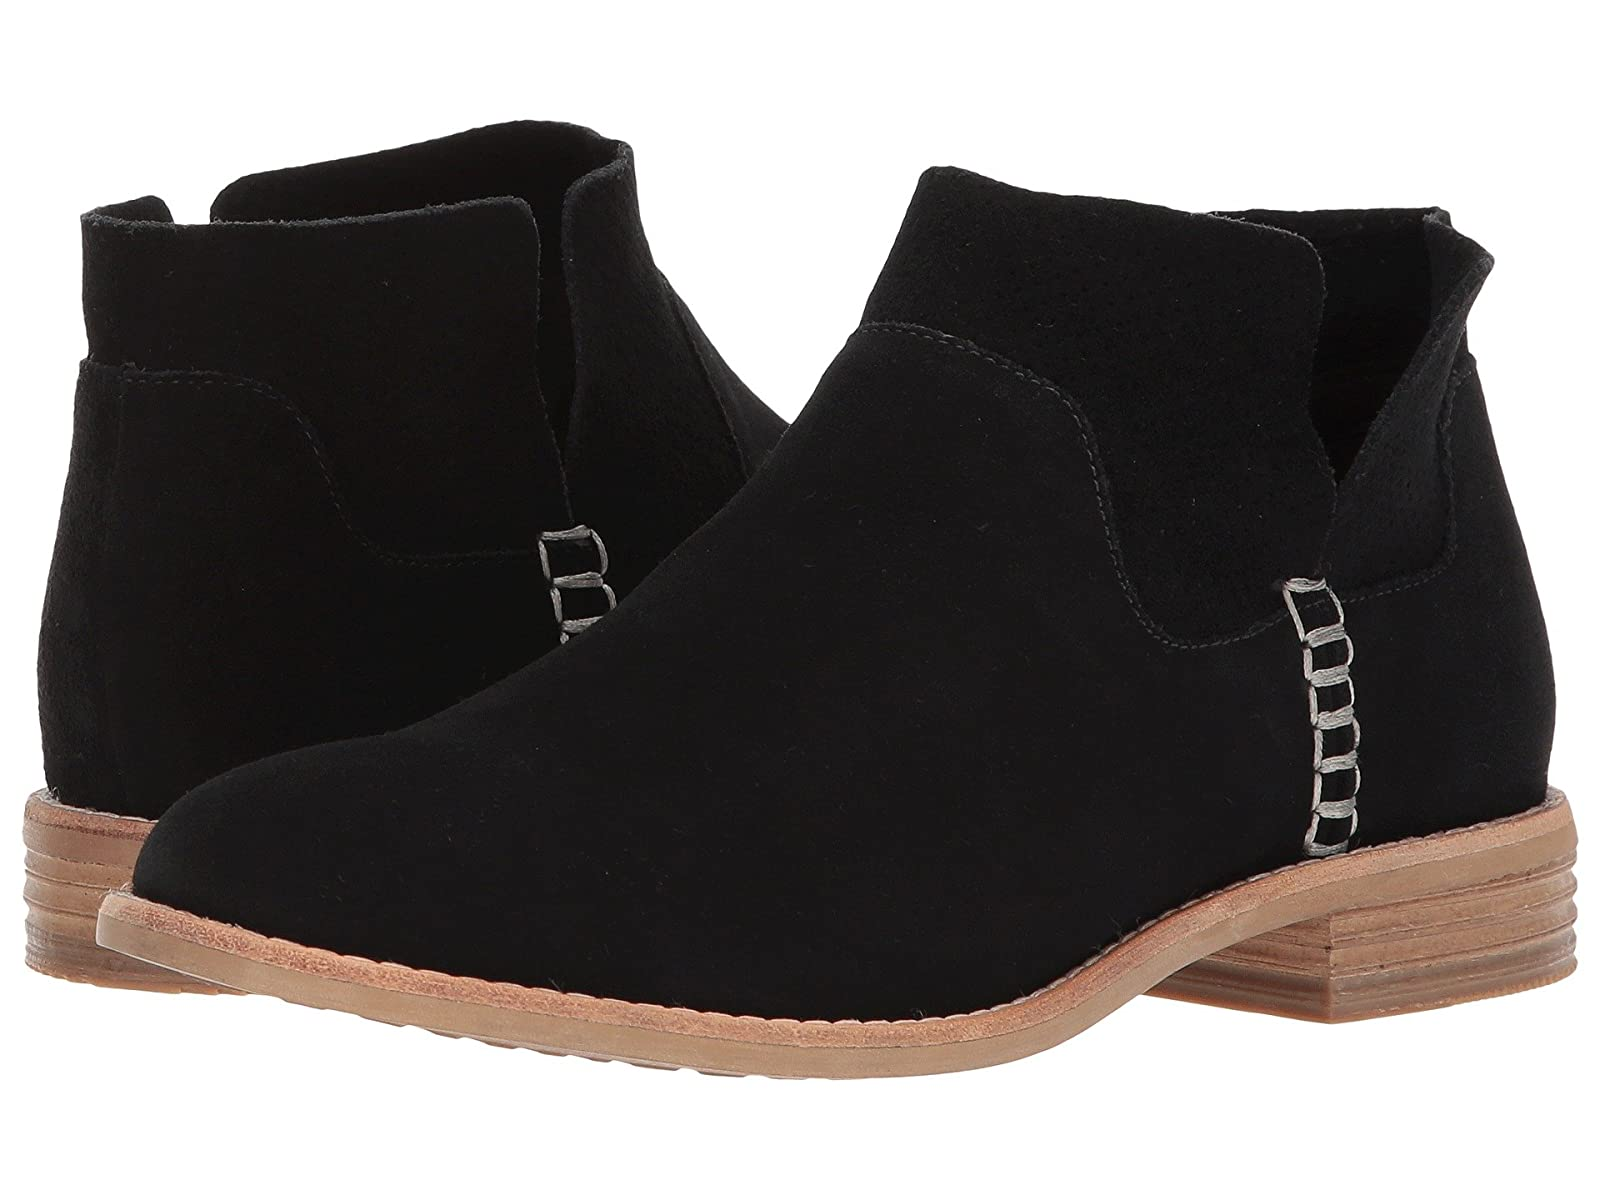 Clarks Edenvale BellaCheap and distinctive eye-catching shoes